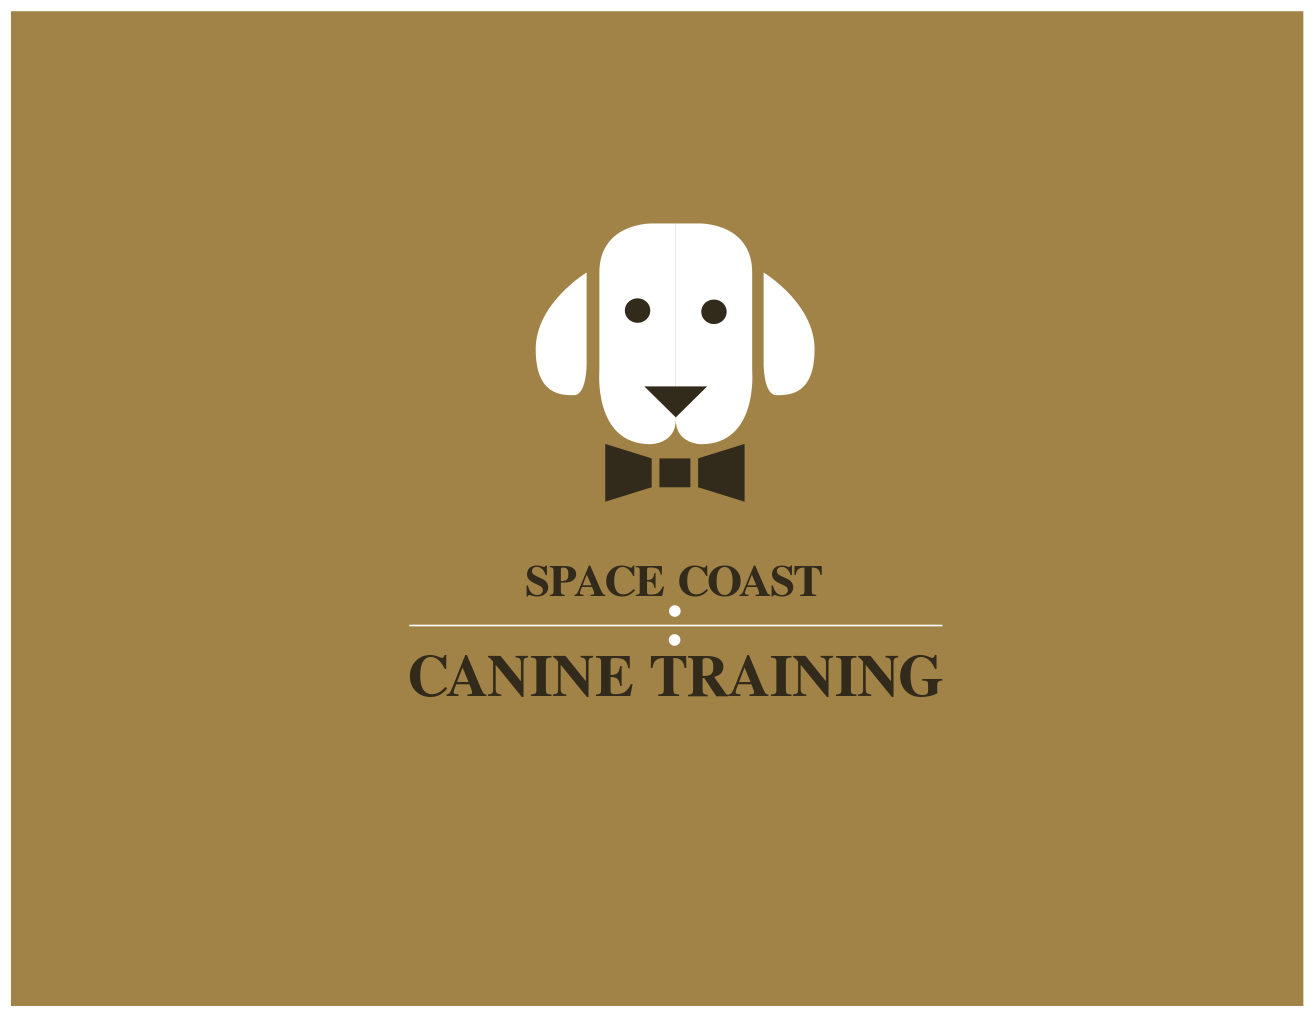 Logo Design by JaroslavProcka - Entry No. 82 in the Logo Design Contest Creative Logo Design for Space Coast Canine Training.